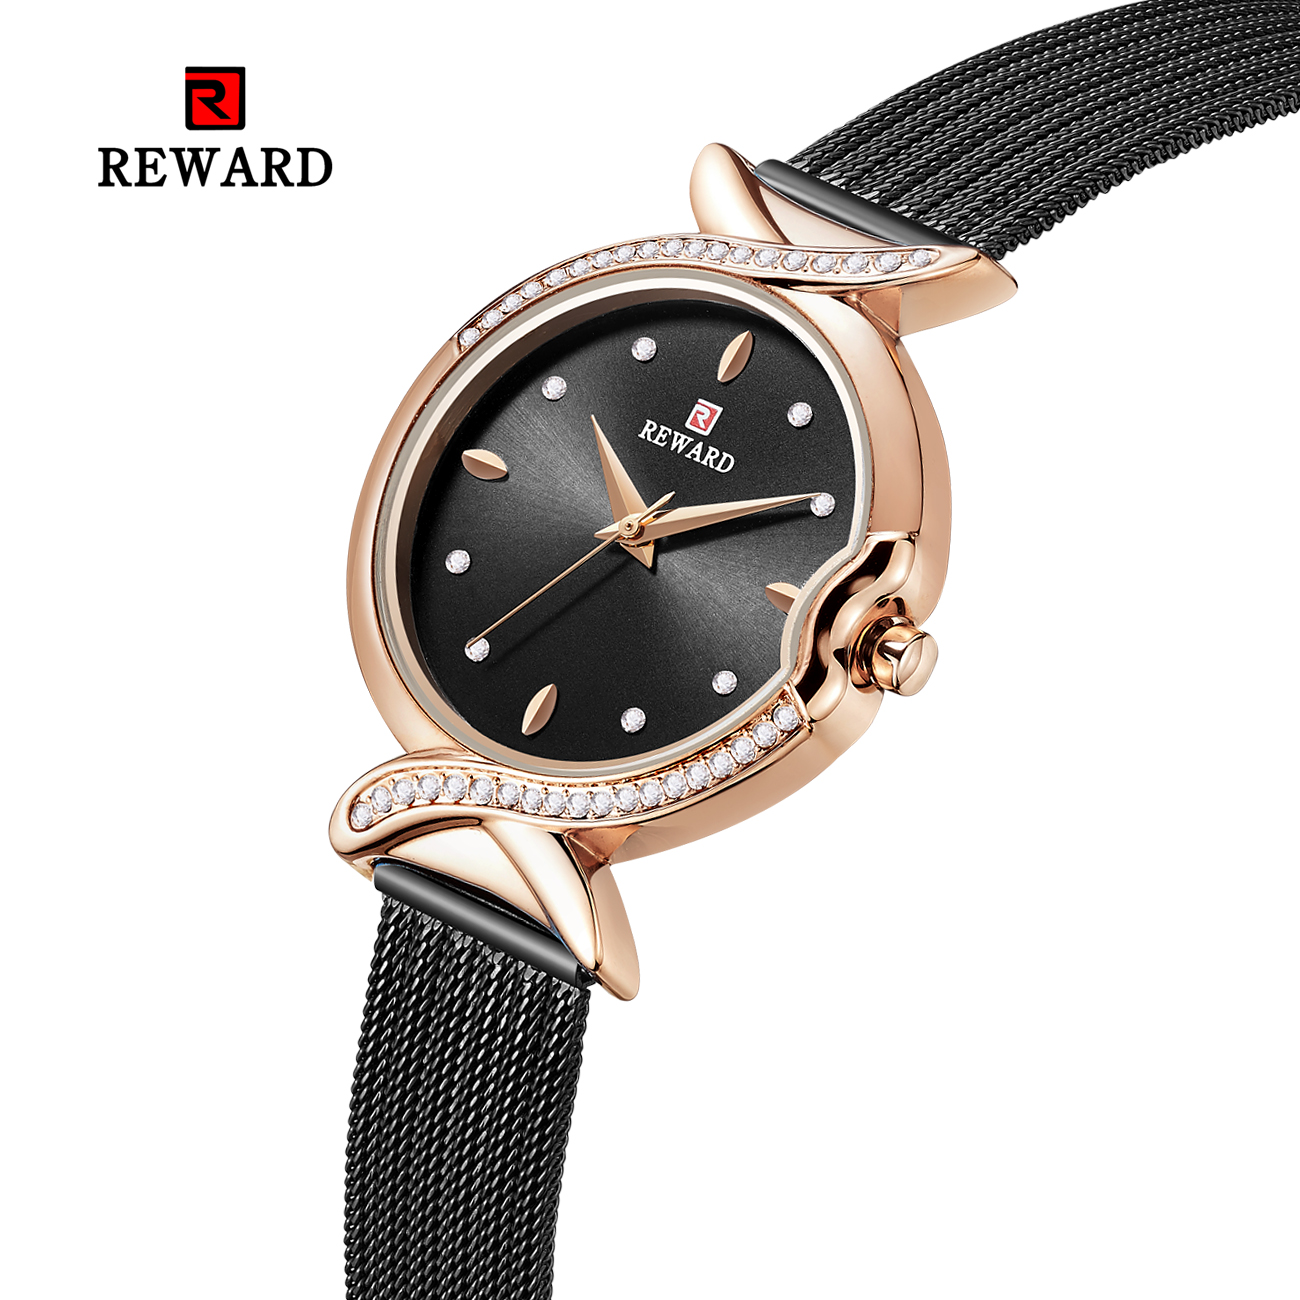 women watches dress watch diamond casual dress small dial Exquisite luxury designer rose gold watch gift for girlfriend RD63075L